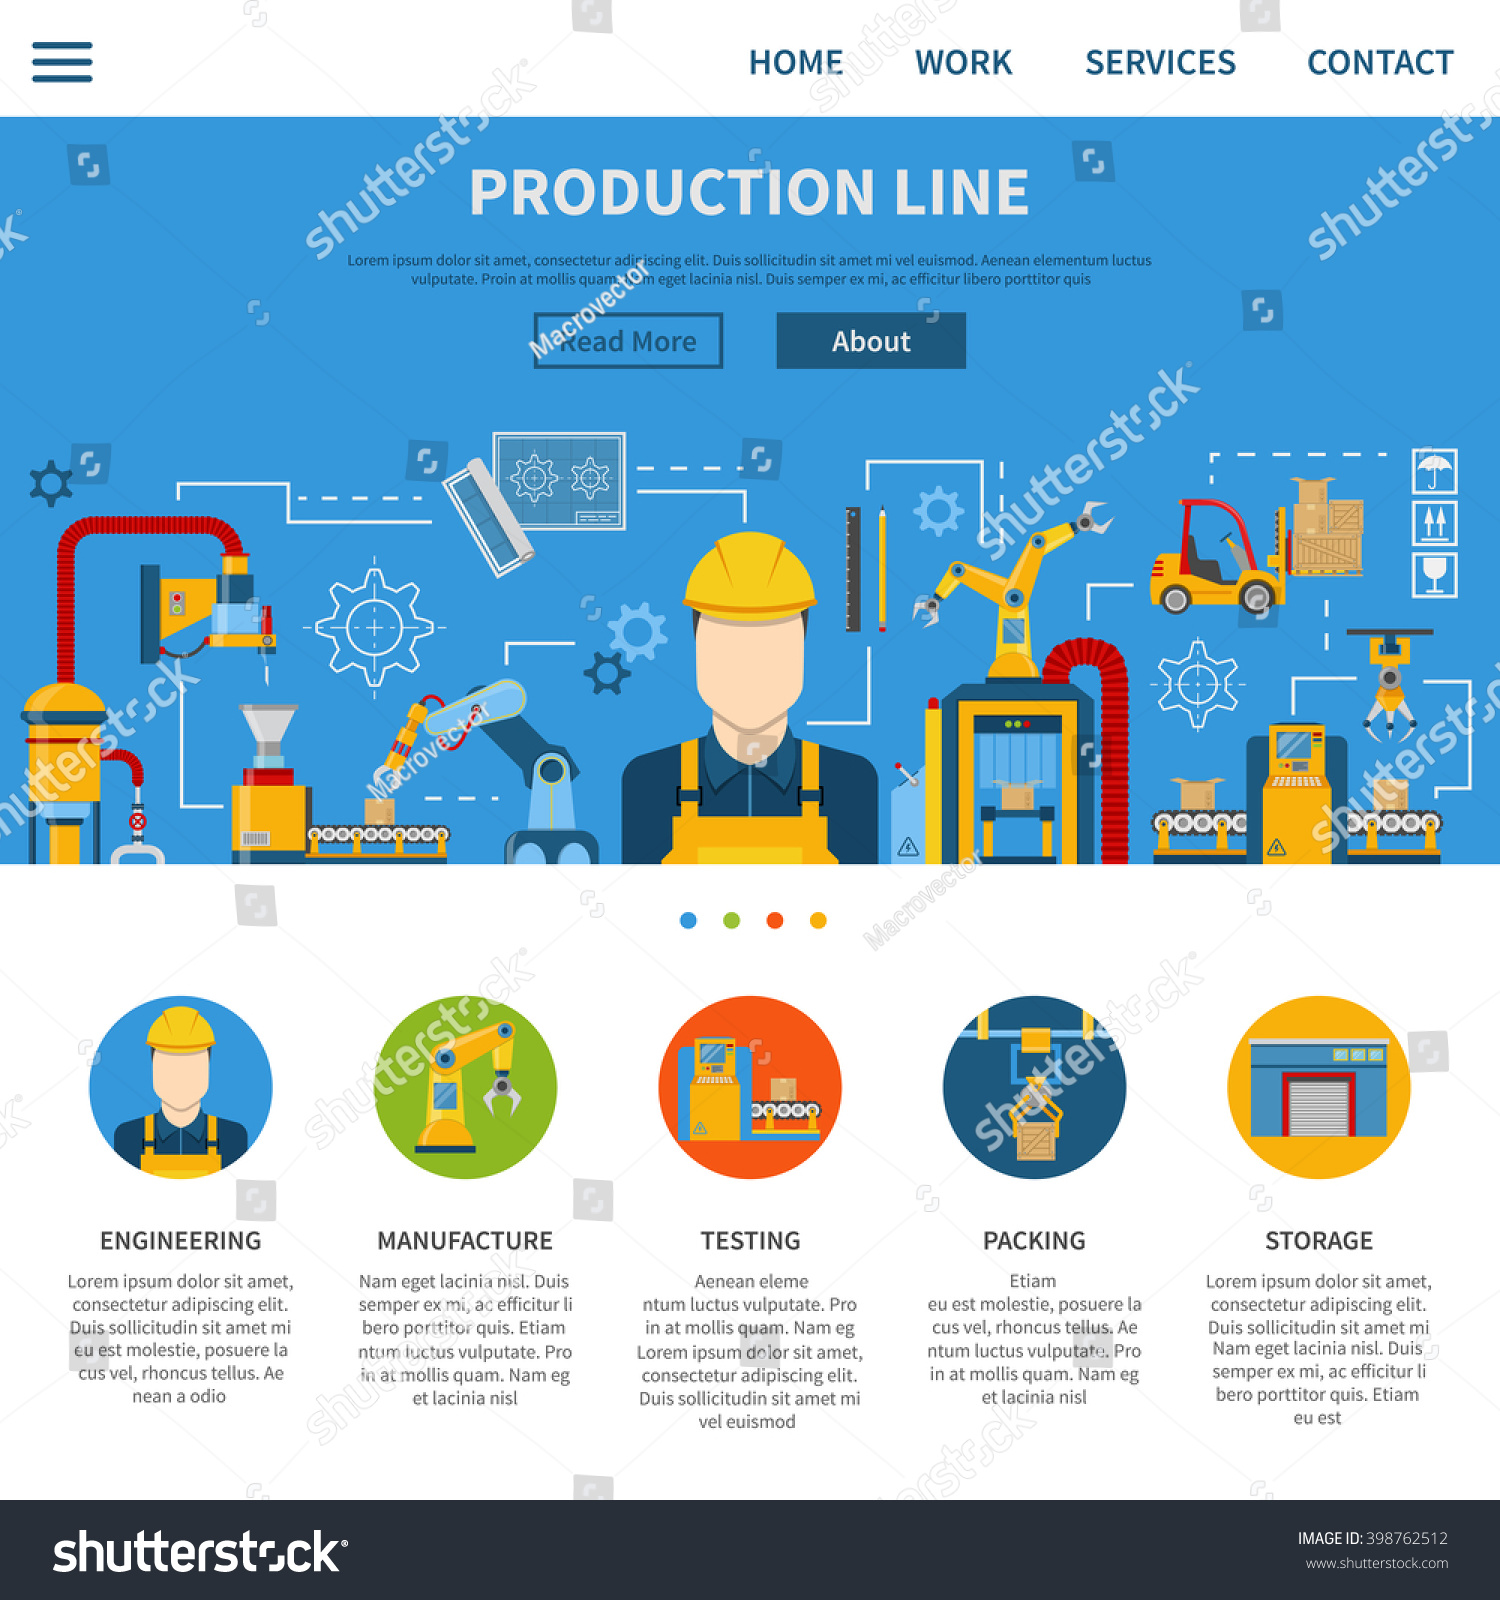 One Web Page About Industrial Production Stock Photo (Photo, Vector ...